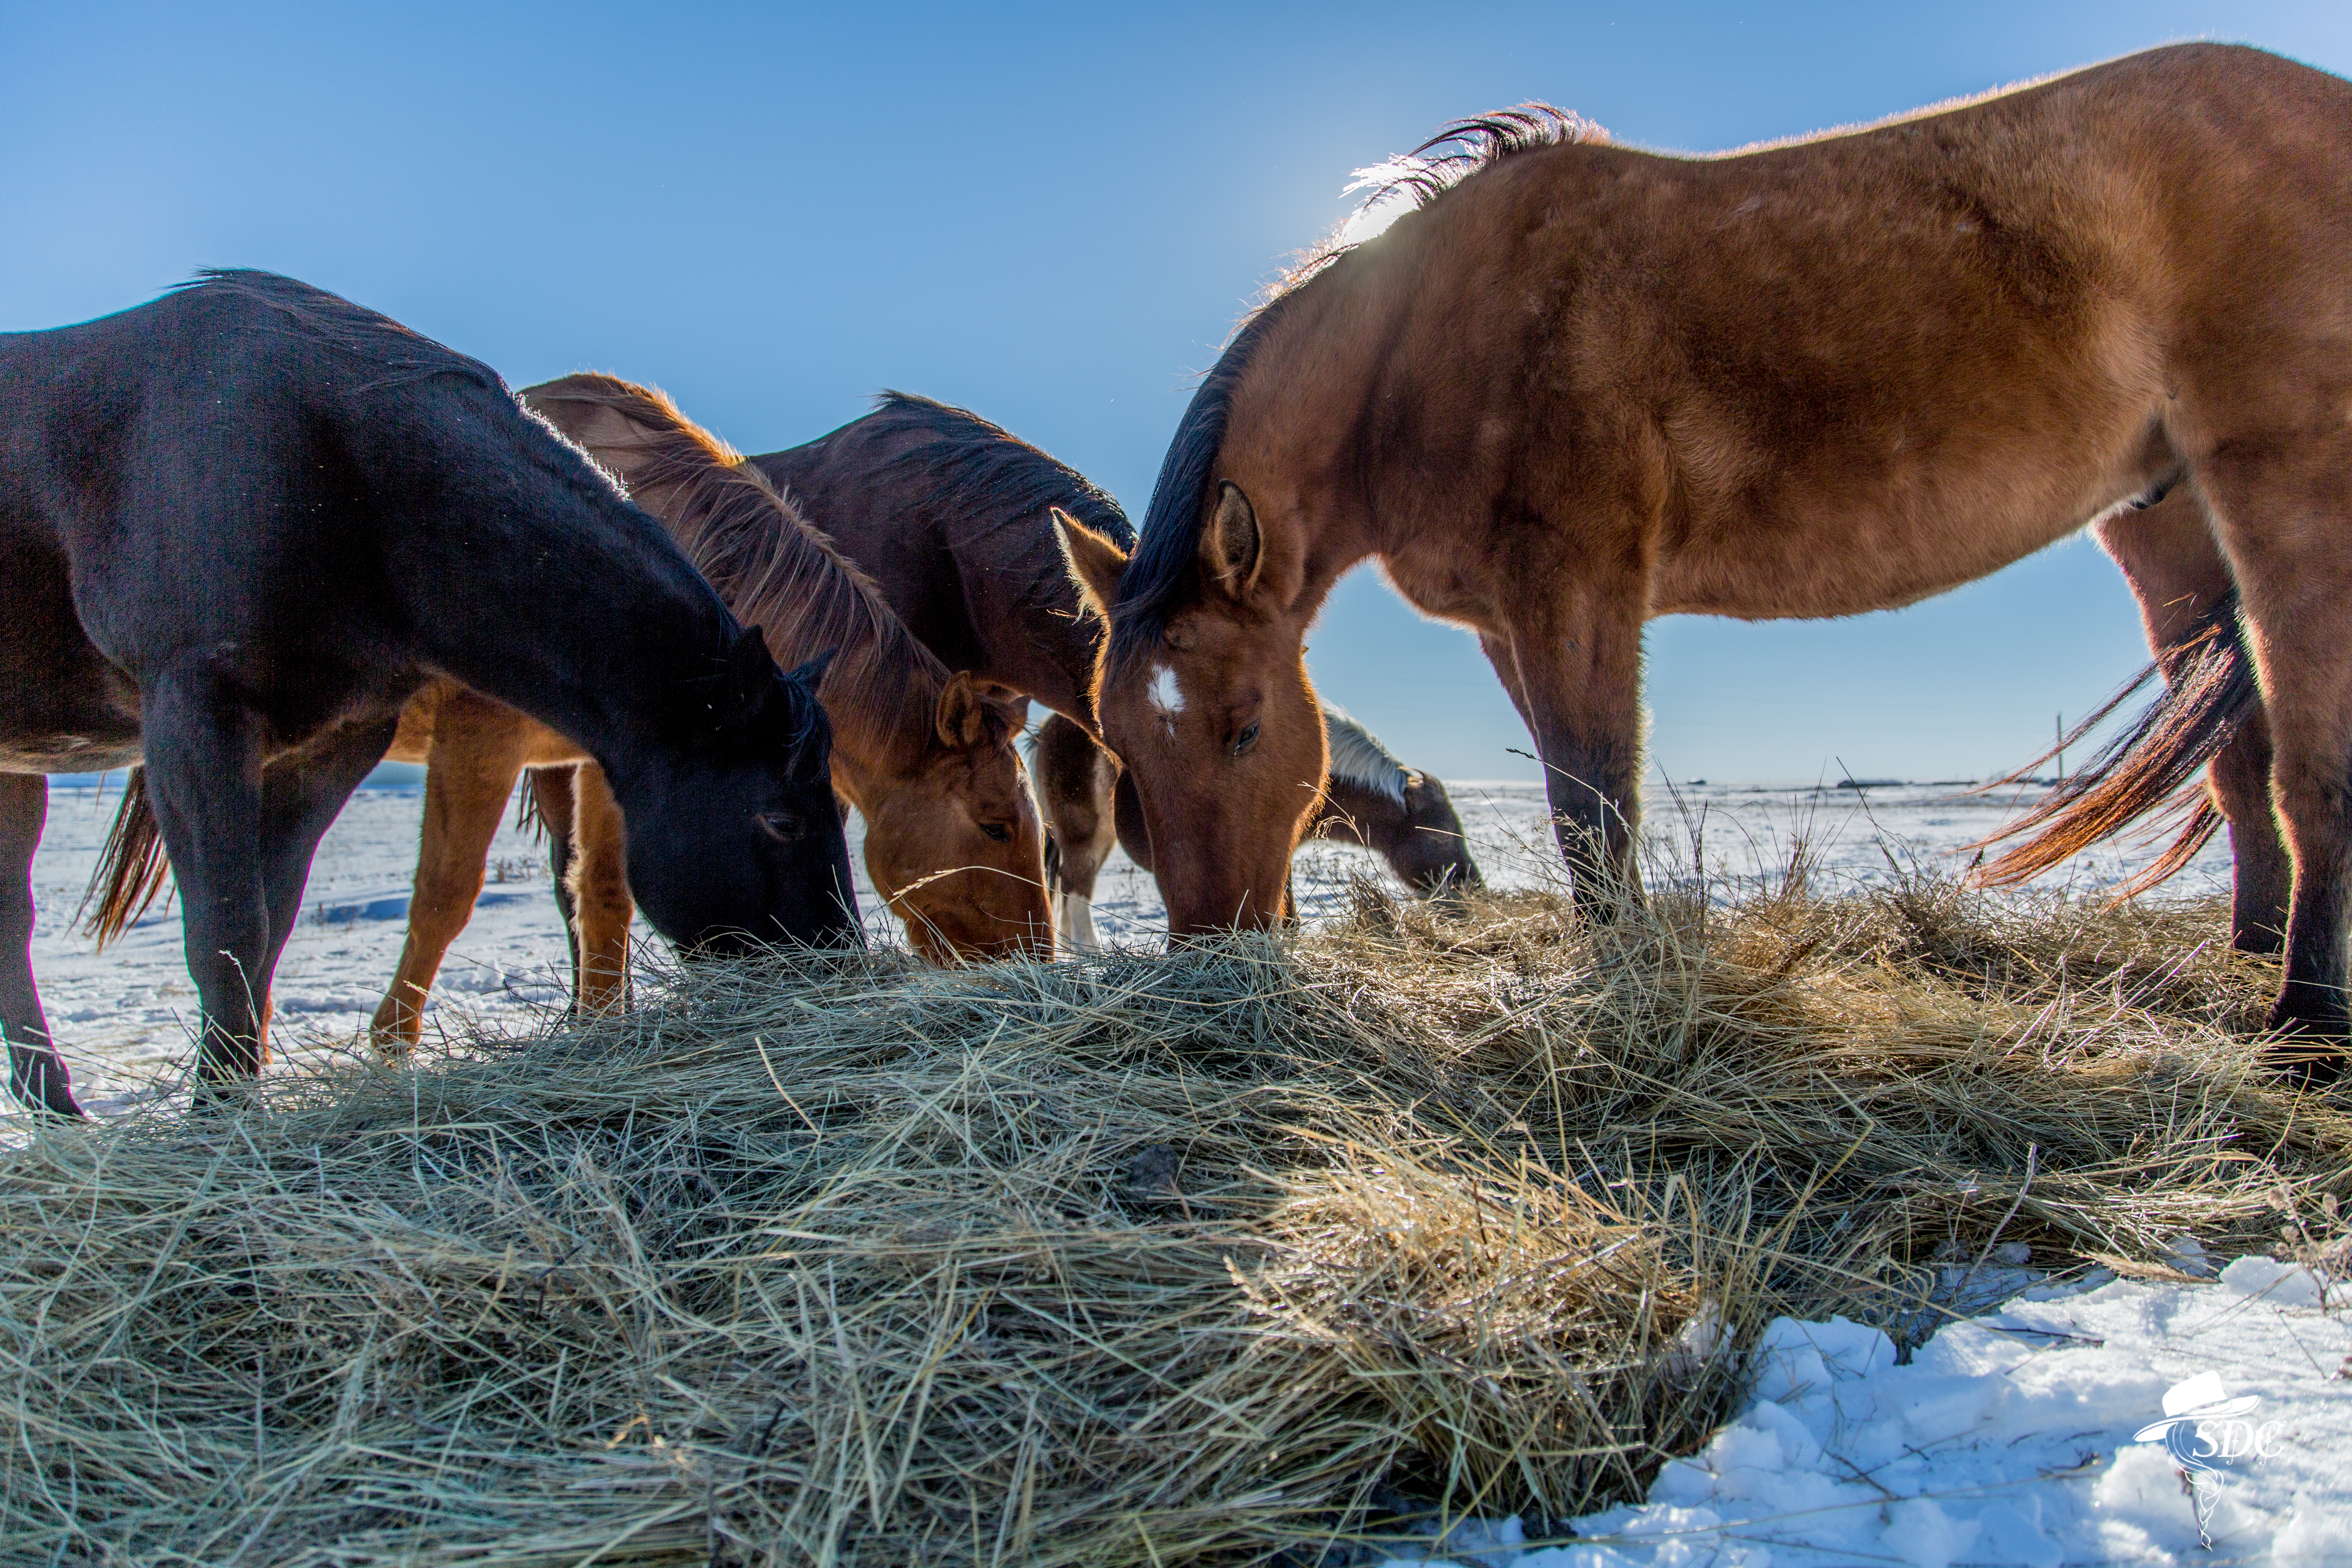 Patience is key, horses in sunshine, winter, snow, the south dakota cowgirl